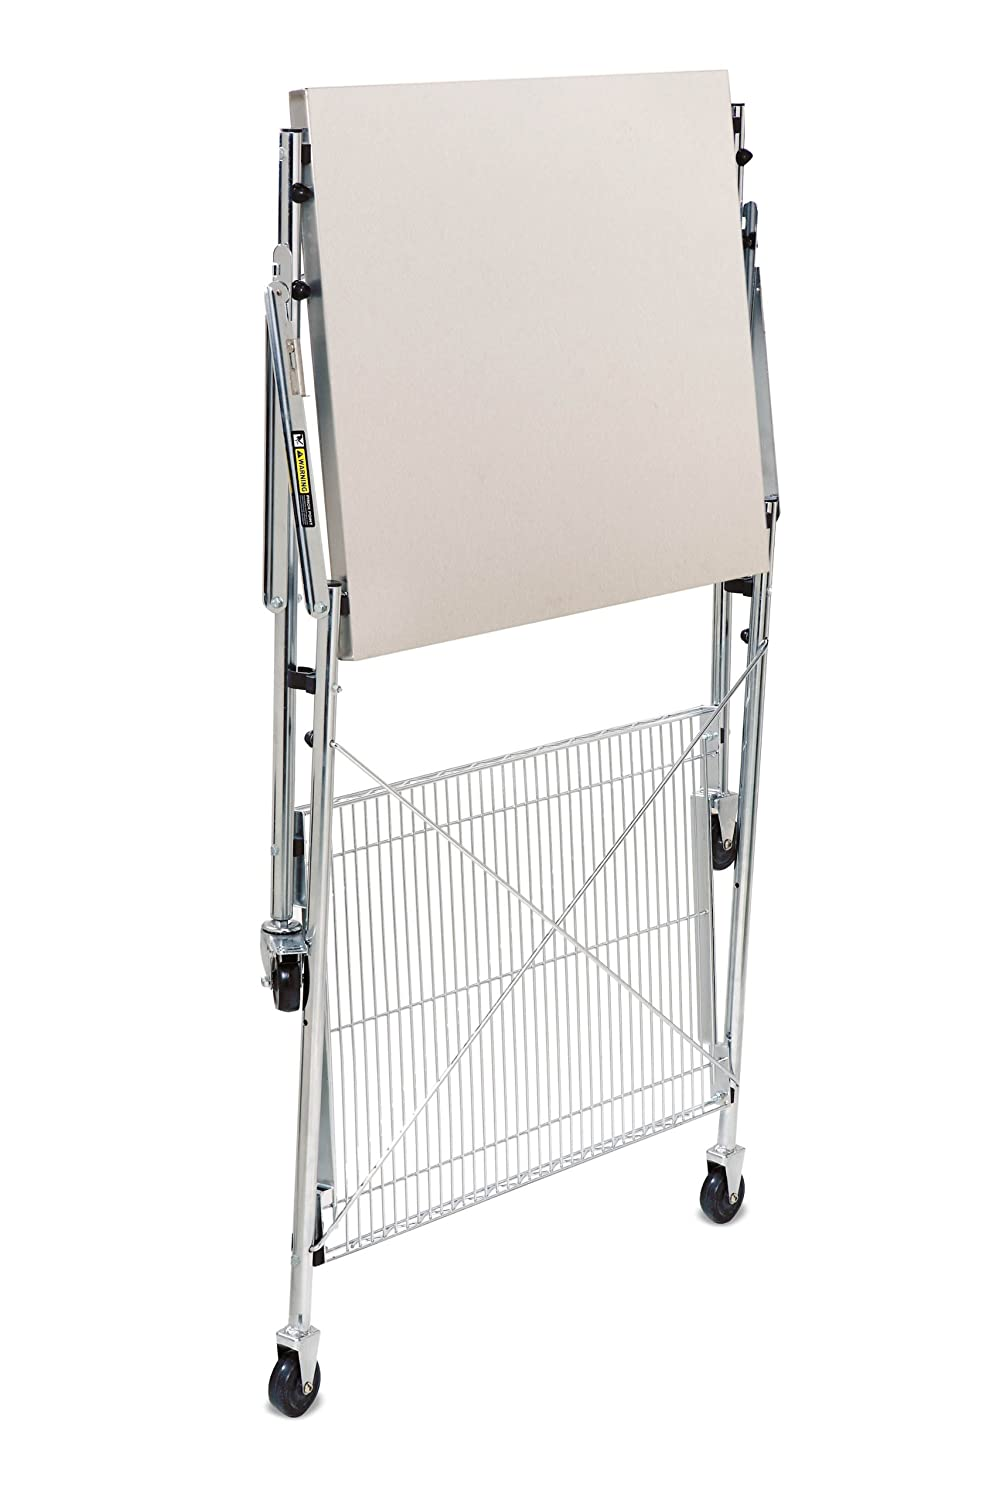 STAINLESS STEEL FOLDING KITCHEN WORK UTILITY CART TABLE ON WHEELS STORAGE EBay